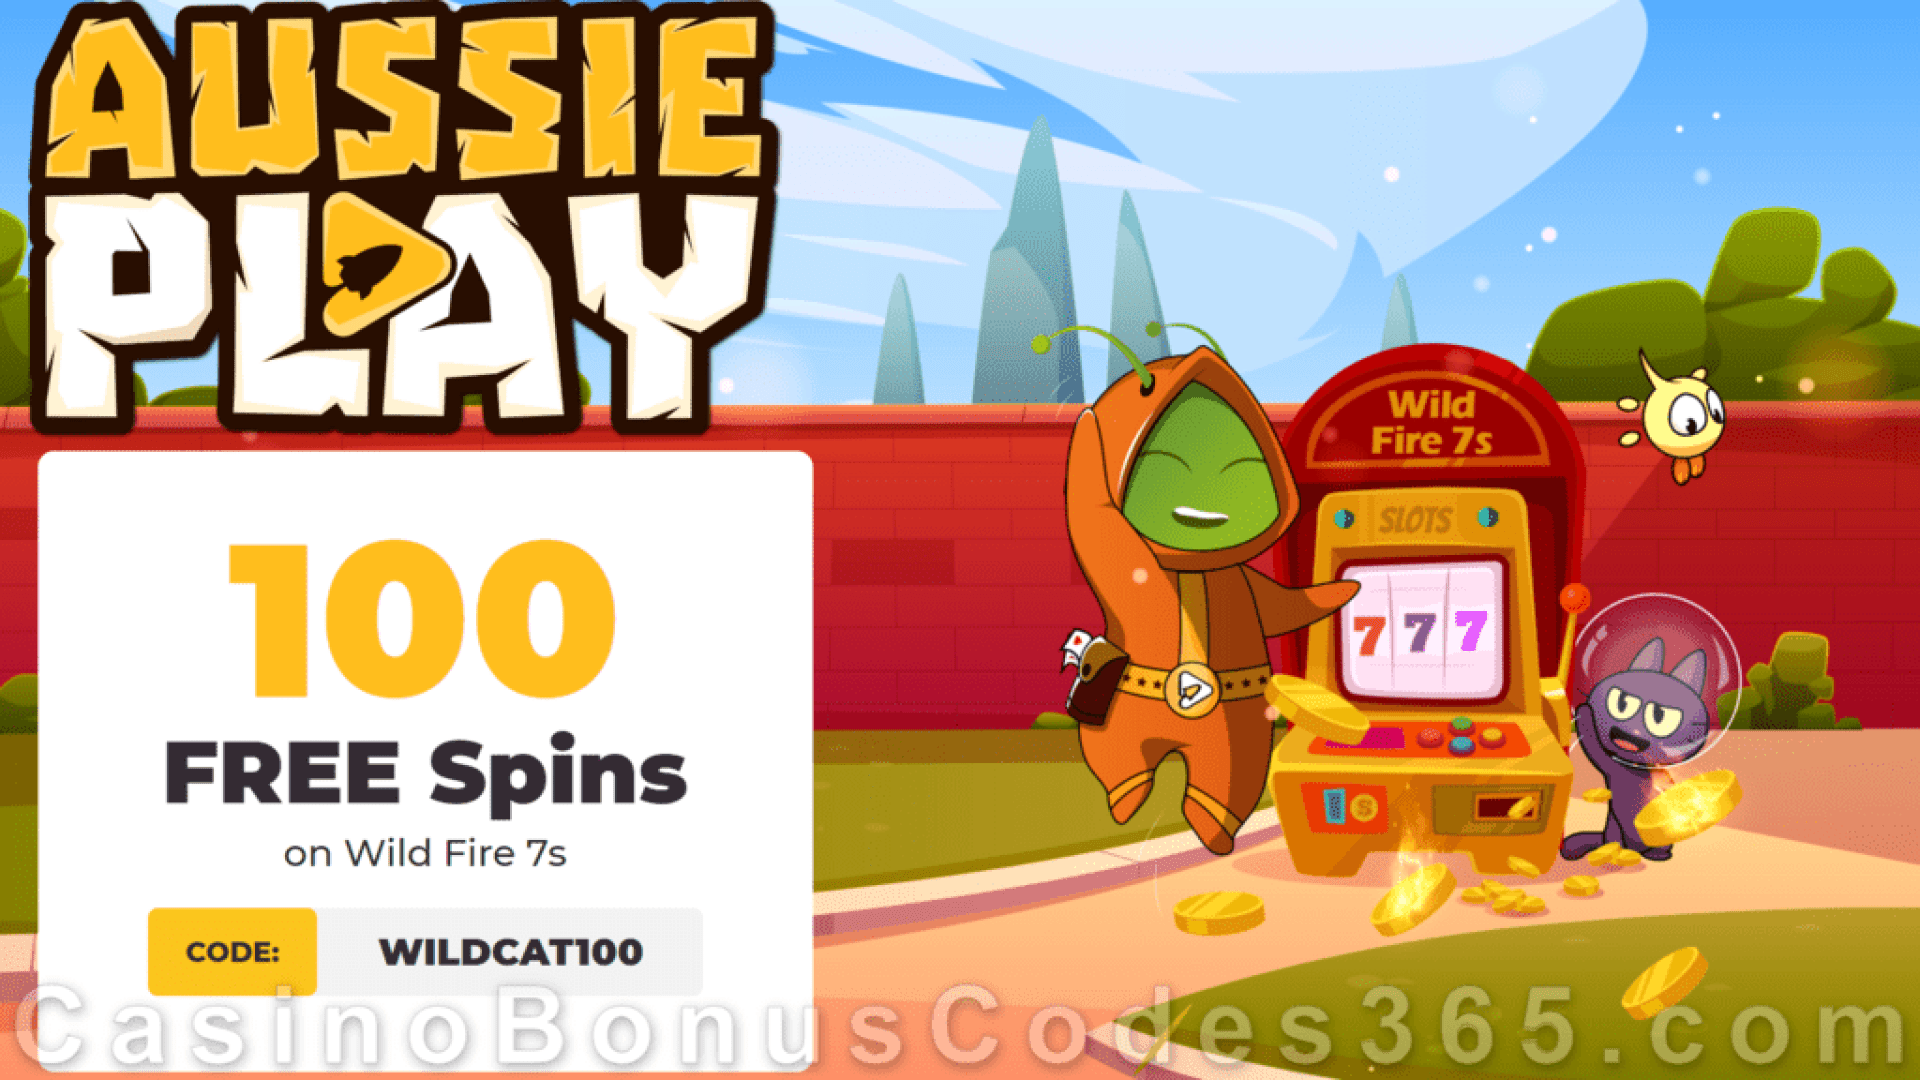 AussiePlay Casino 100 FREE RTG Wild Fire 7s Spins Special New Players Offer